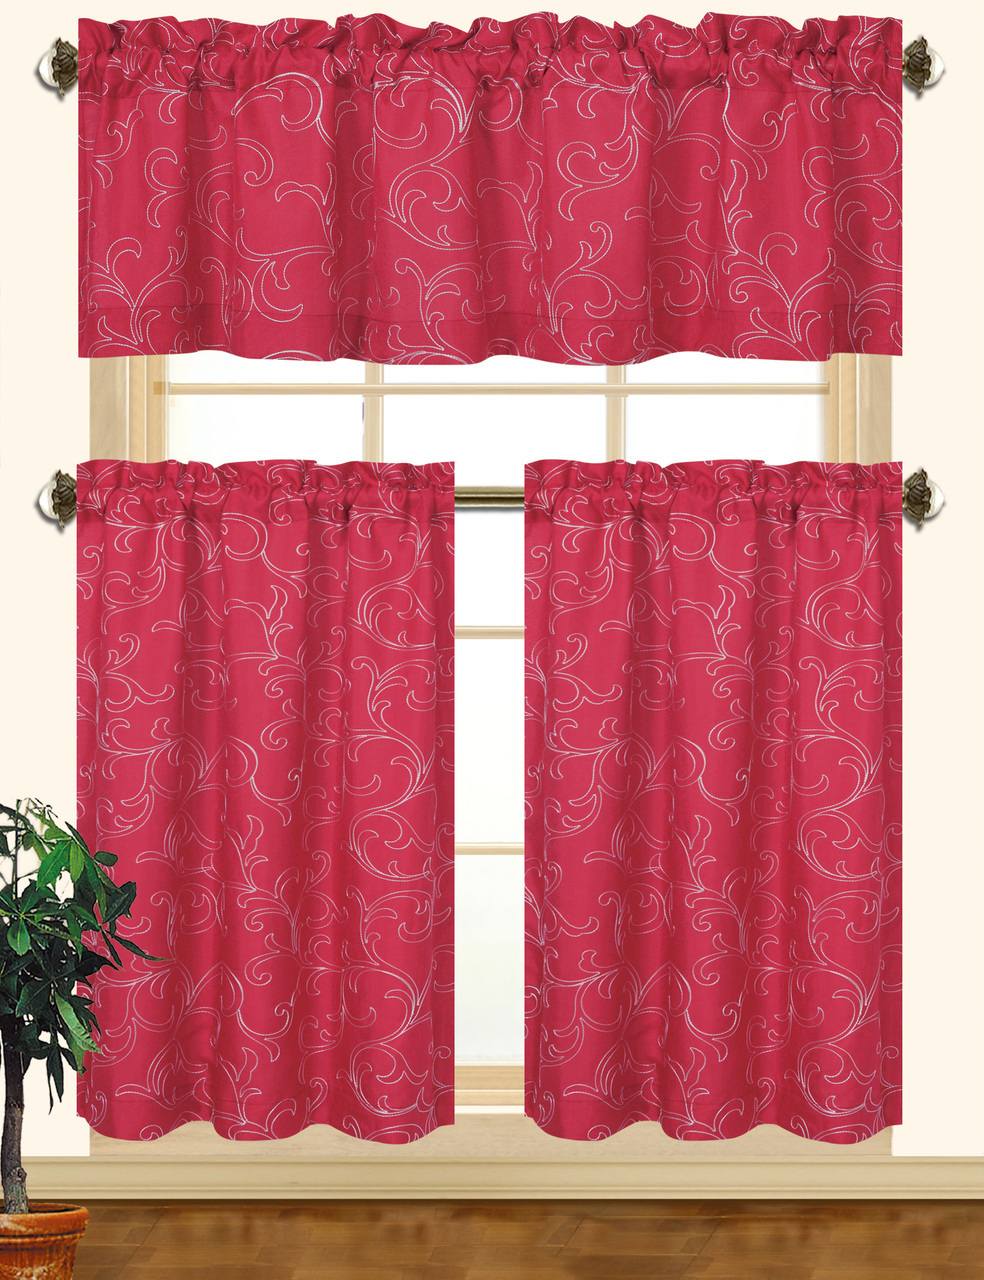 Kashi Home Chelsea 3Pc Scroll Embroidered Decorative Kitchen Curtain Set  (Burgundy/white) Intended For Most Up To Date Kitchen Burgundy/white Curtain Sets (Gallery 11 of 20)